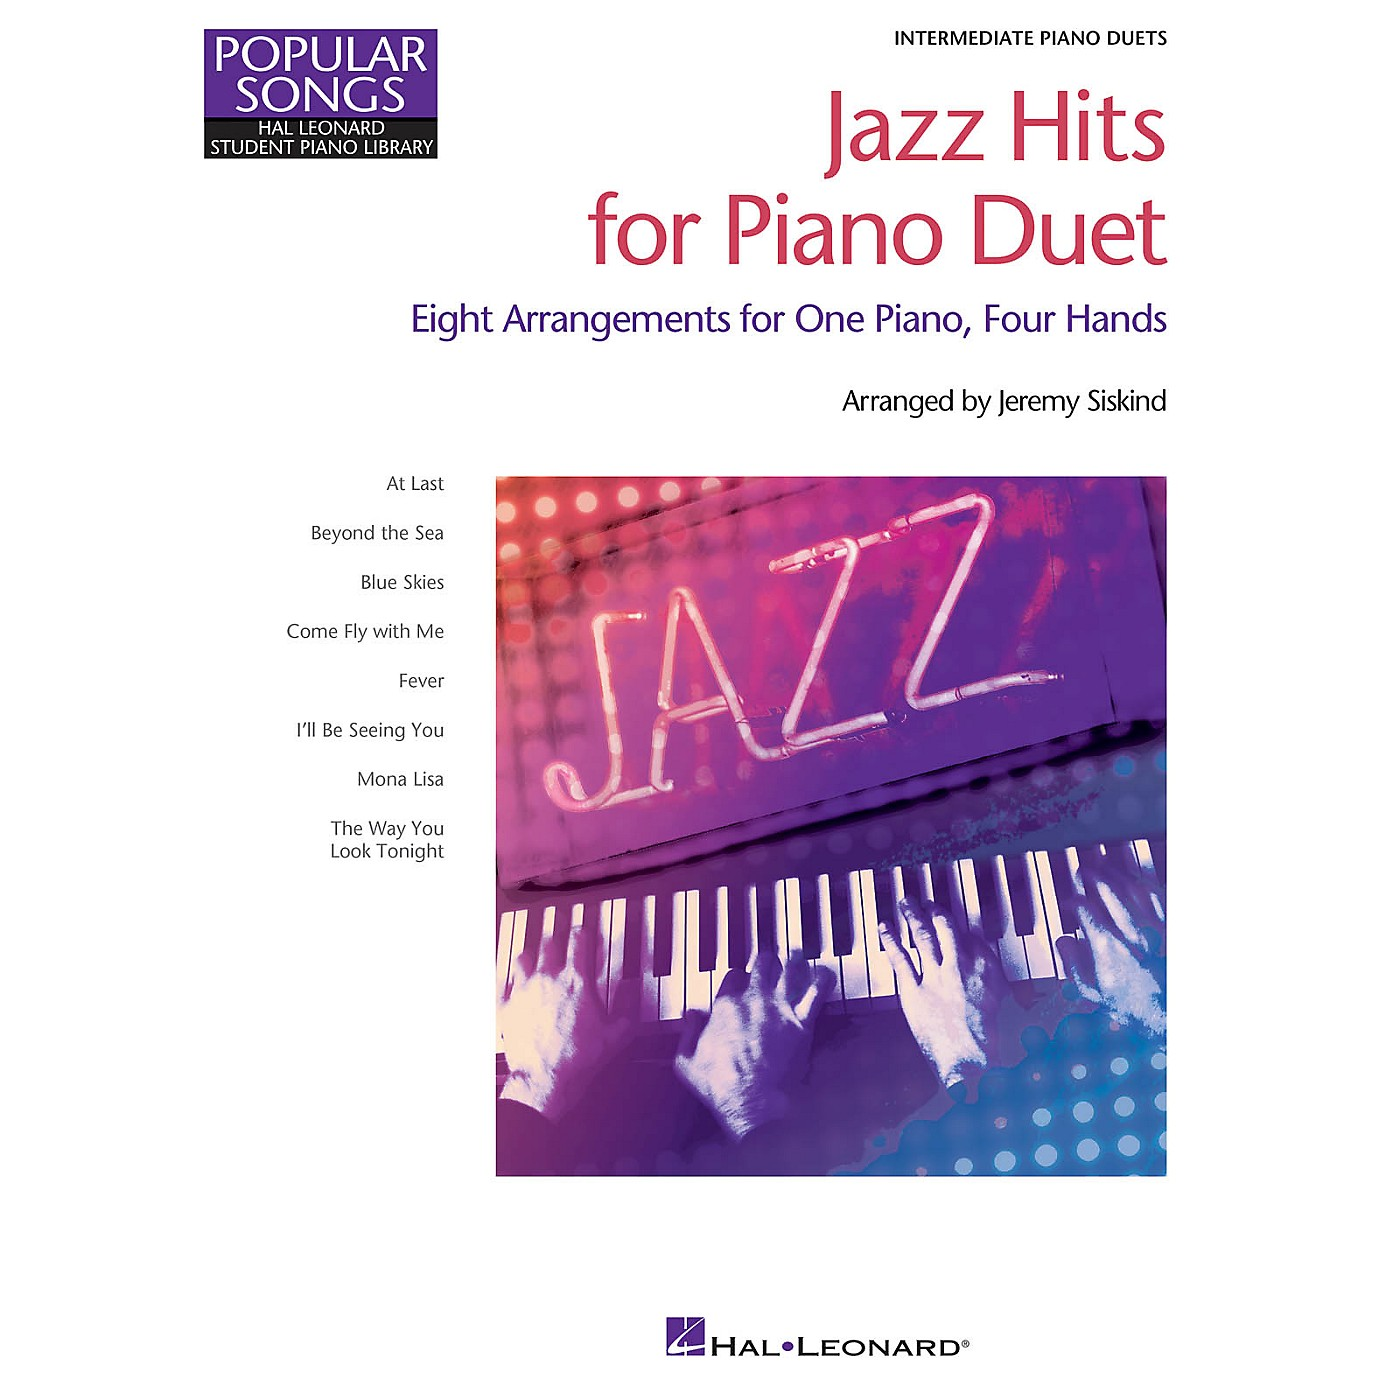 Hal Leonard Jazz Hits for Piano Duet Piano Library Series Book by Various (Level Inter) thumbnail